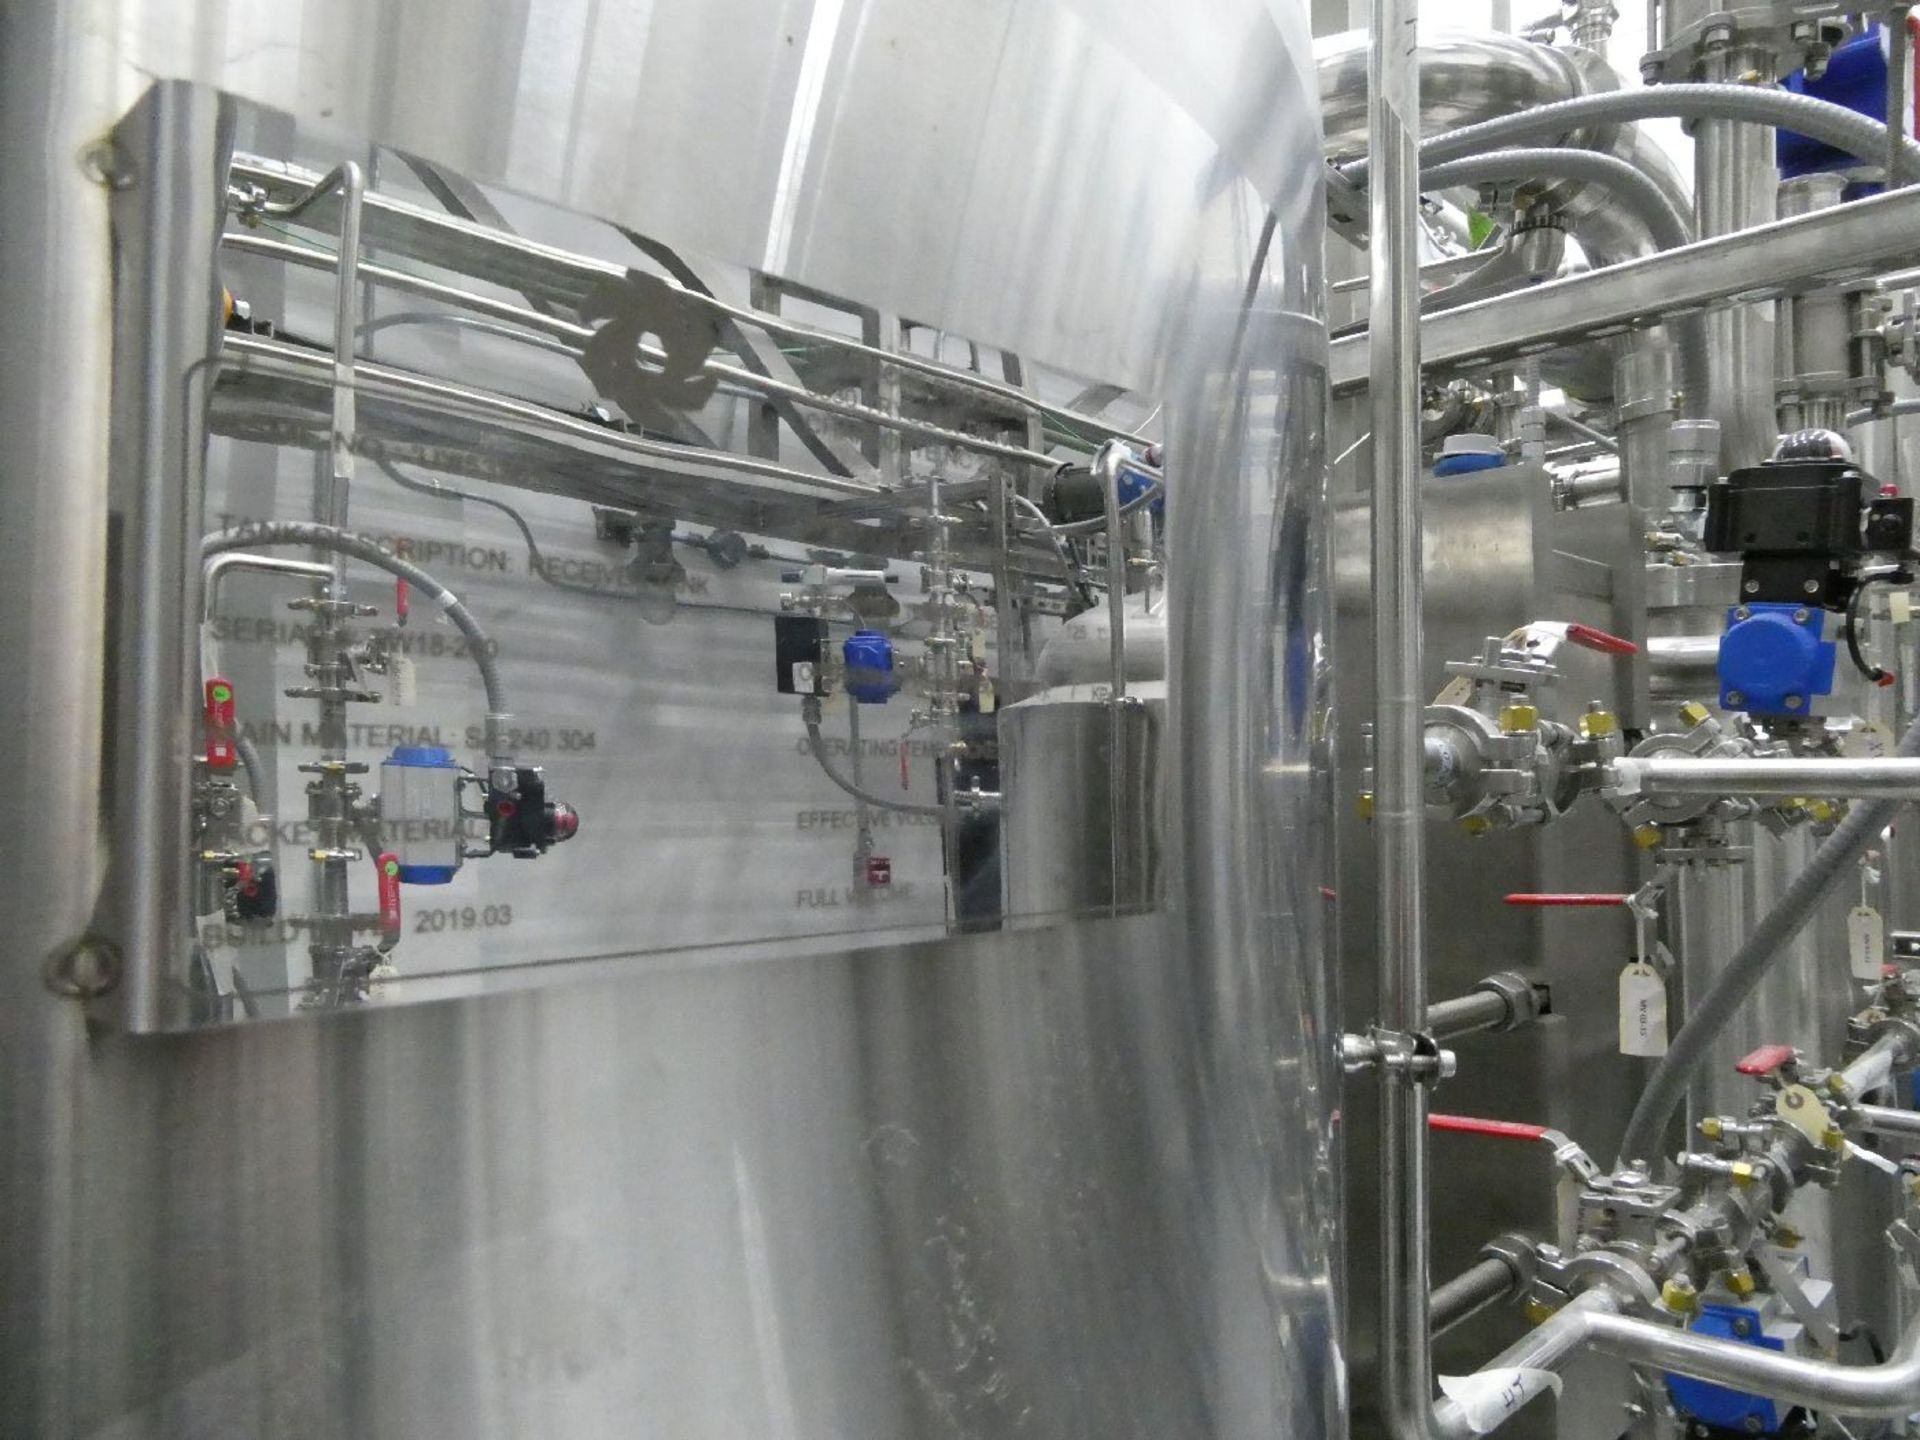 ROTAX Closed Loop Solvent Based Continuous Oil Extraction System - Image 22 of 68